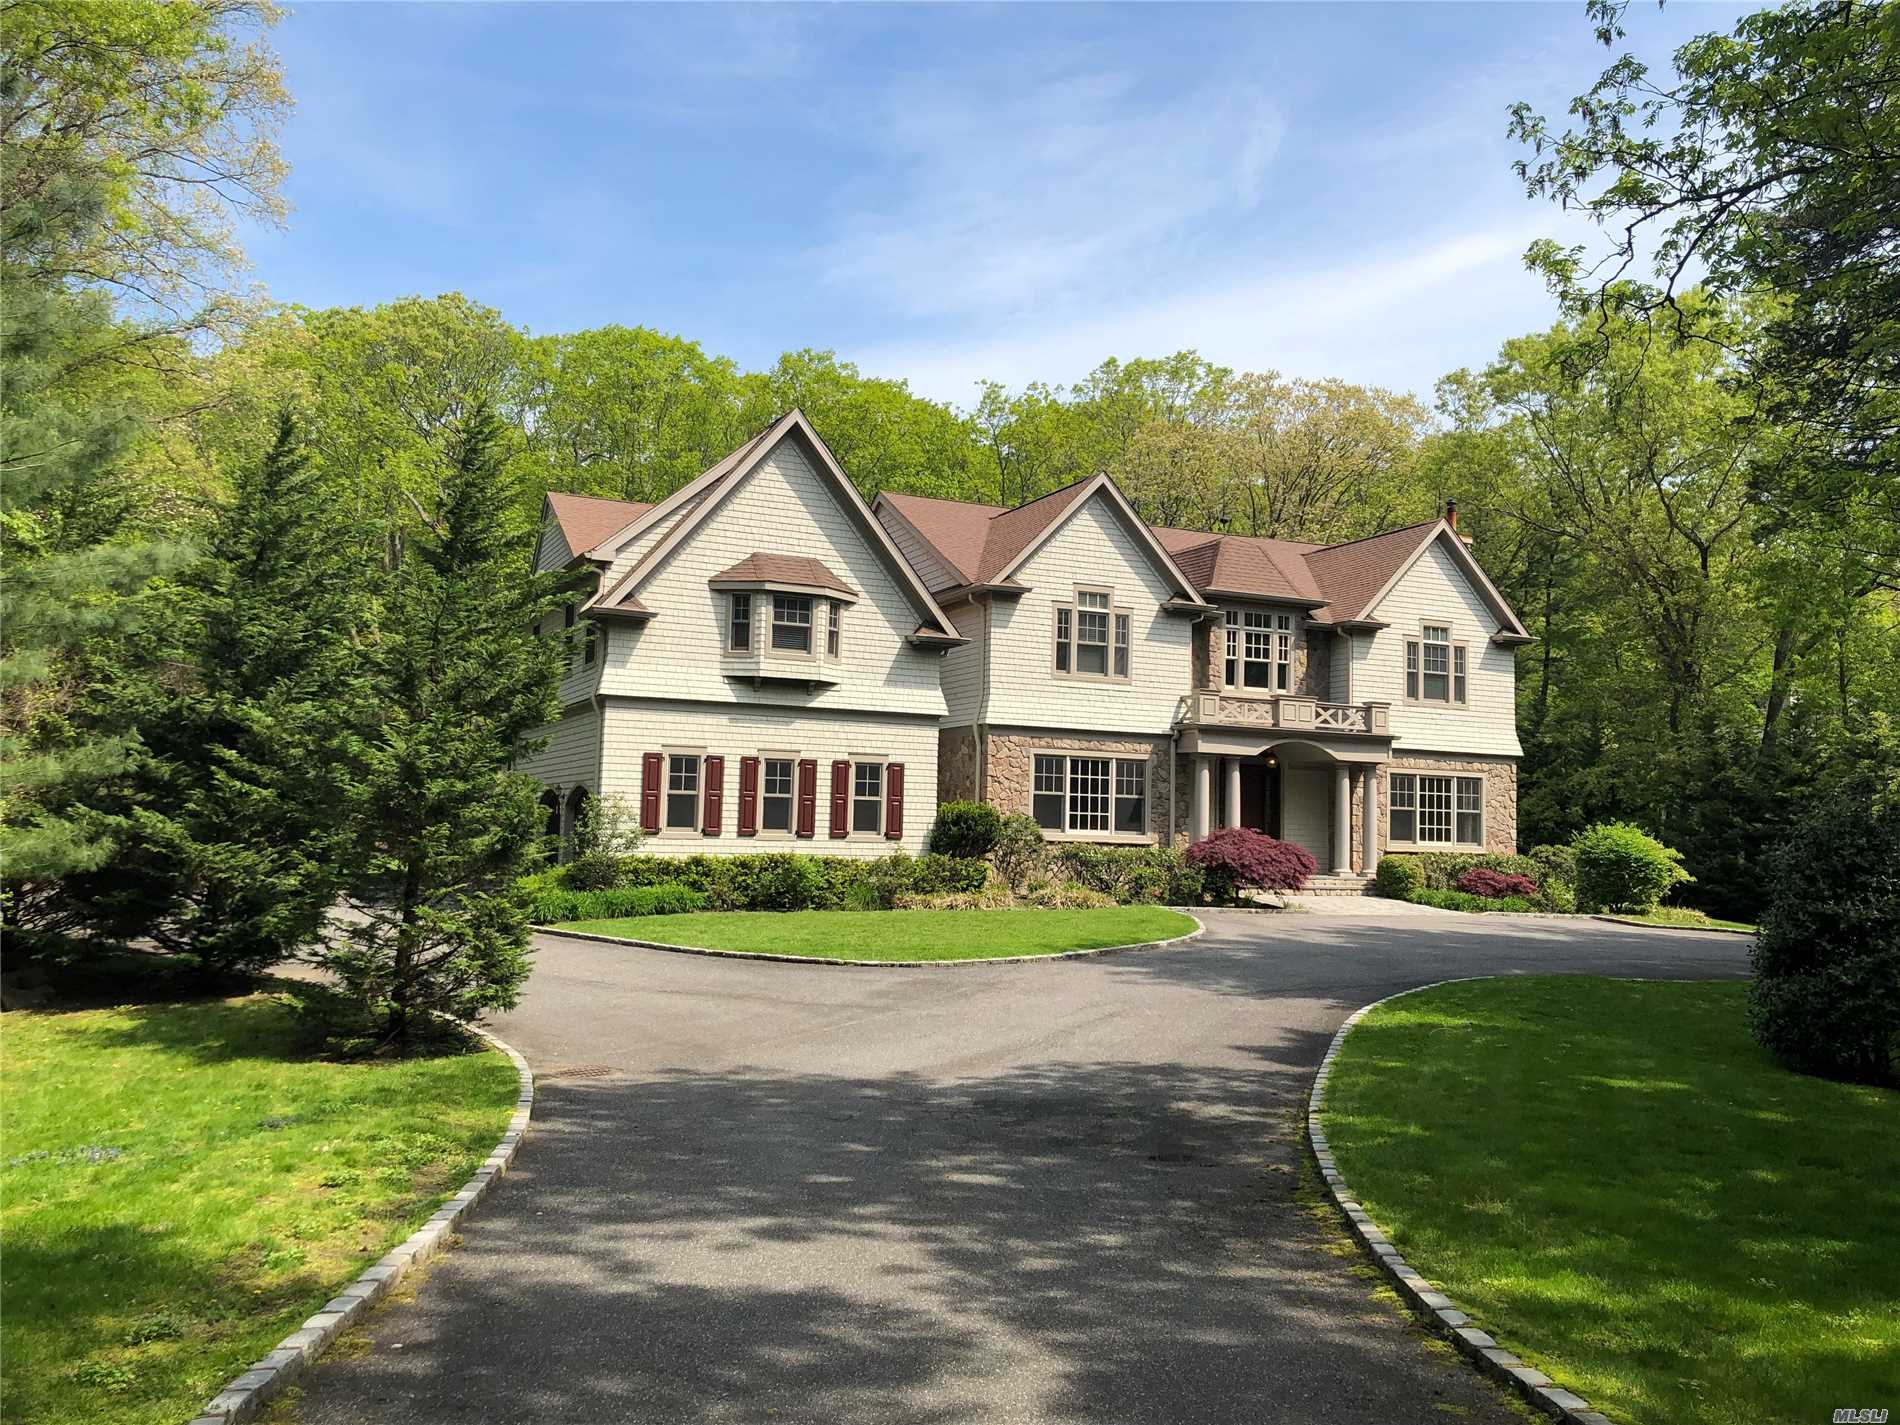 Great Colonial, Spacious And Bright, Gourmet Kitchen, Great Bathrooms, Spacious Bedrooms, High Ceilings, Cac, 3 Car Garage. Cold Spring Harbor School.